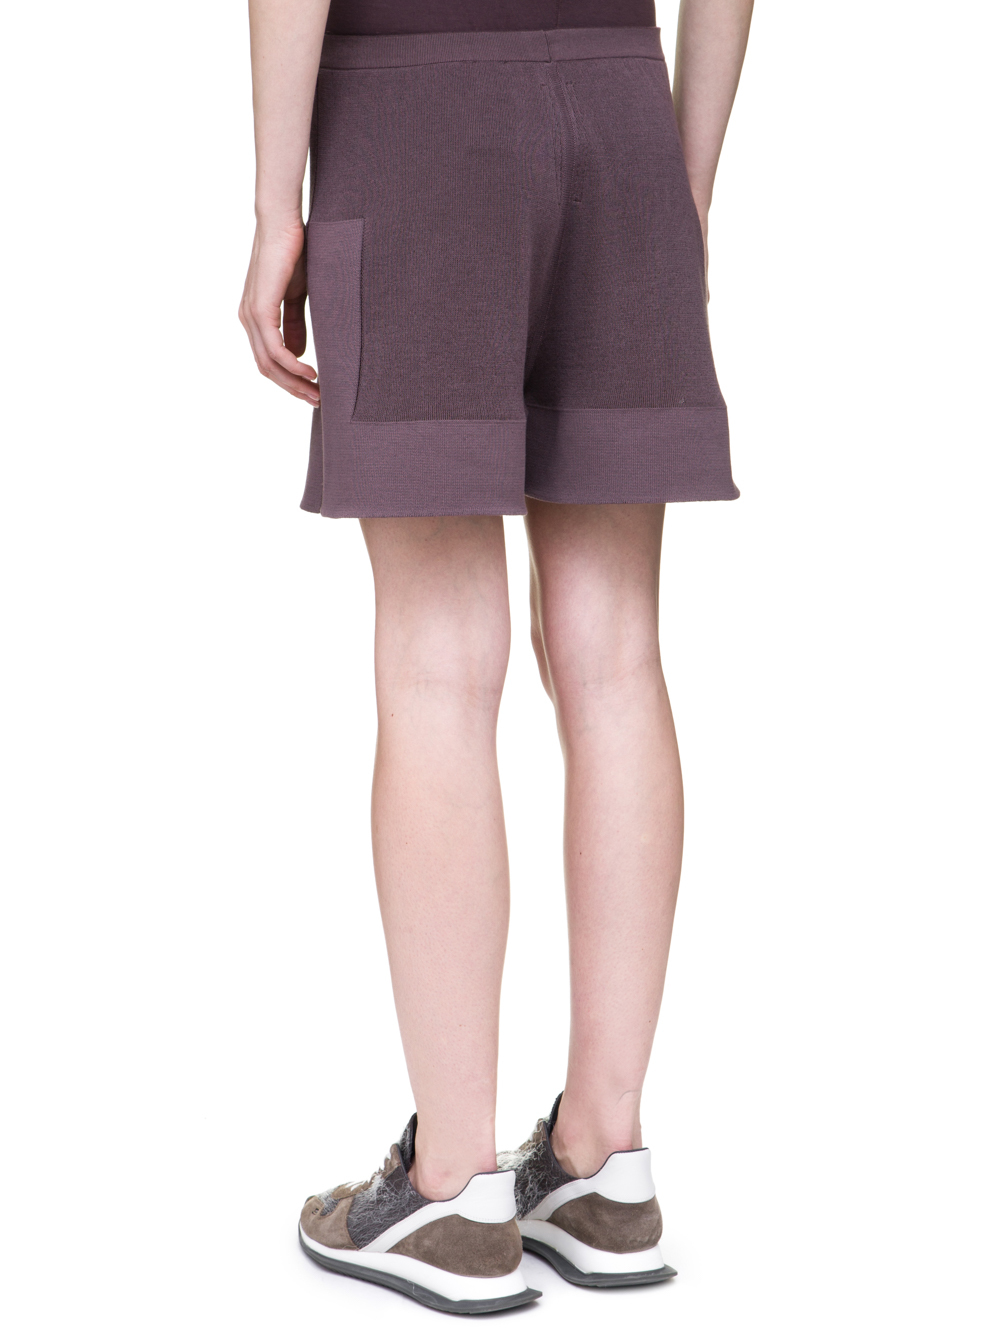 RICK OWENS OFF-THE-RUNWAY BOXERS IN RAISIN PURPLE SCULPTURAL KNIT